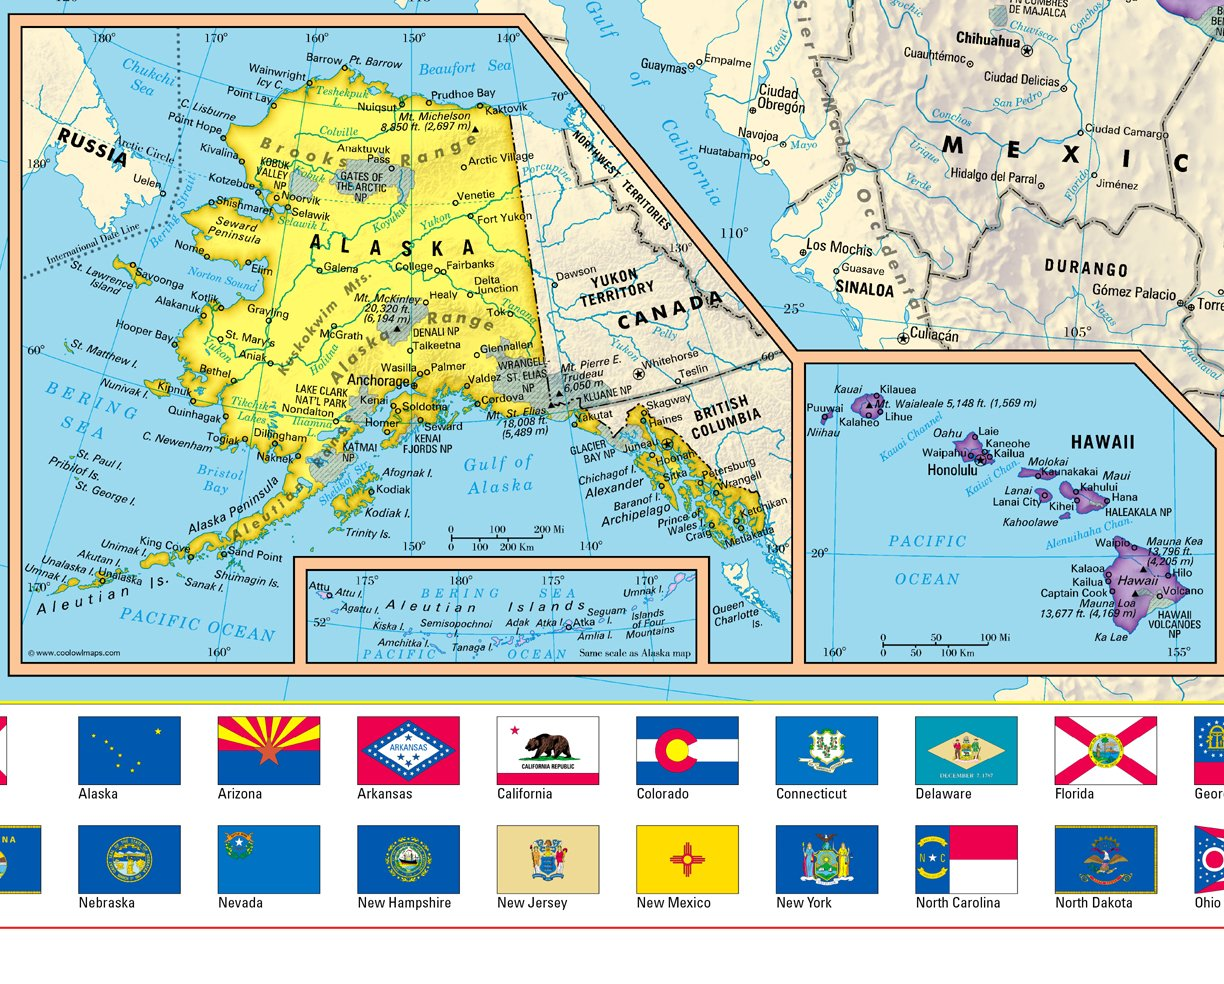 CoolOwlMaps 2018 United States Wall Map Poster with State Flags - Large 36''x30'' Rolled Paper by Cool Owl Maps (Image #3)